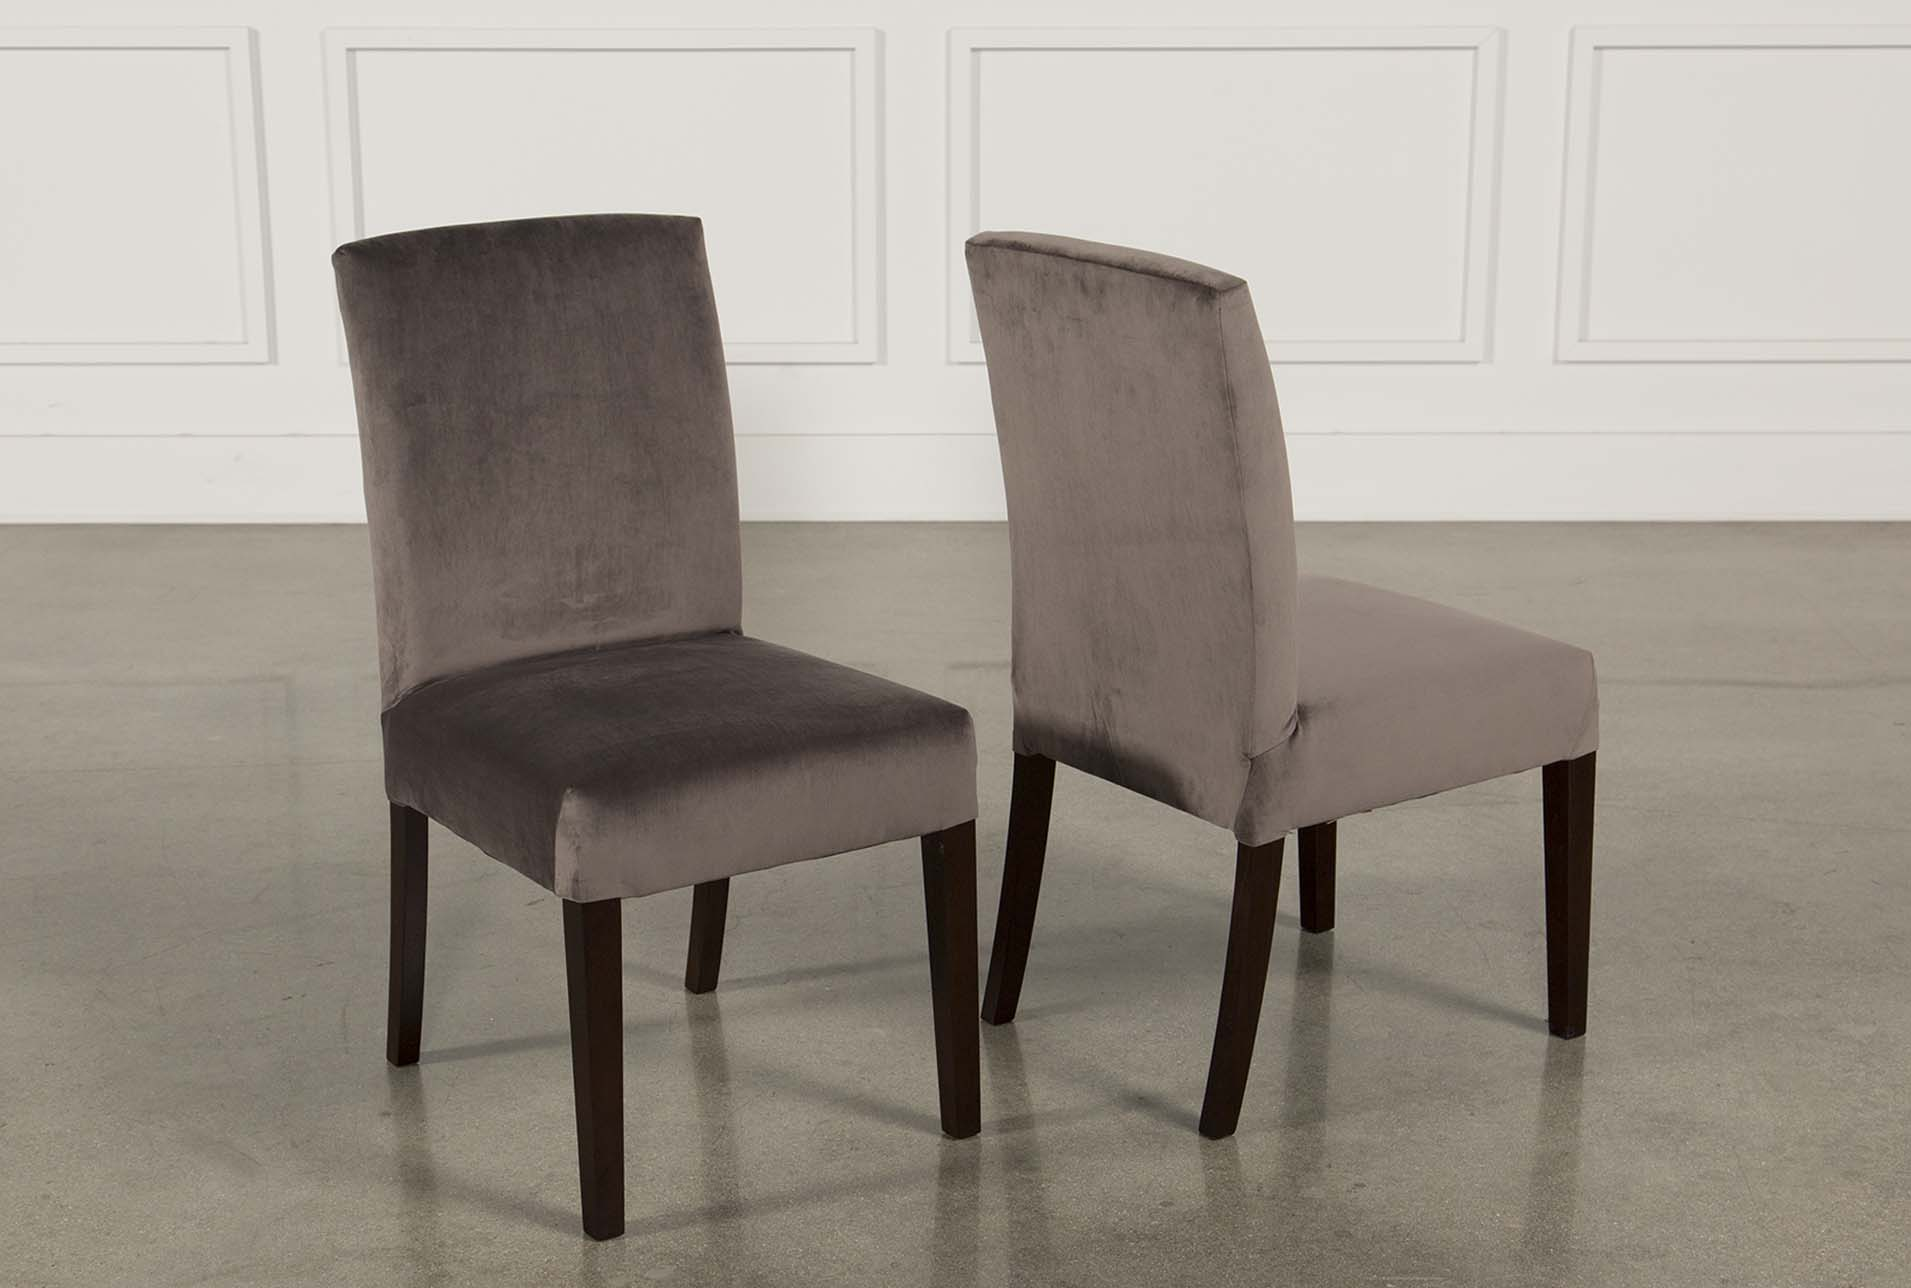 Garten Caviar Chairs W/Espresso Finish Set Of 2 (Qty: 1) Has Been  Successfully Added To Your Cart.